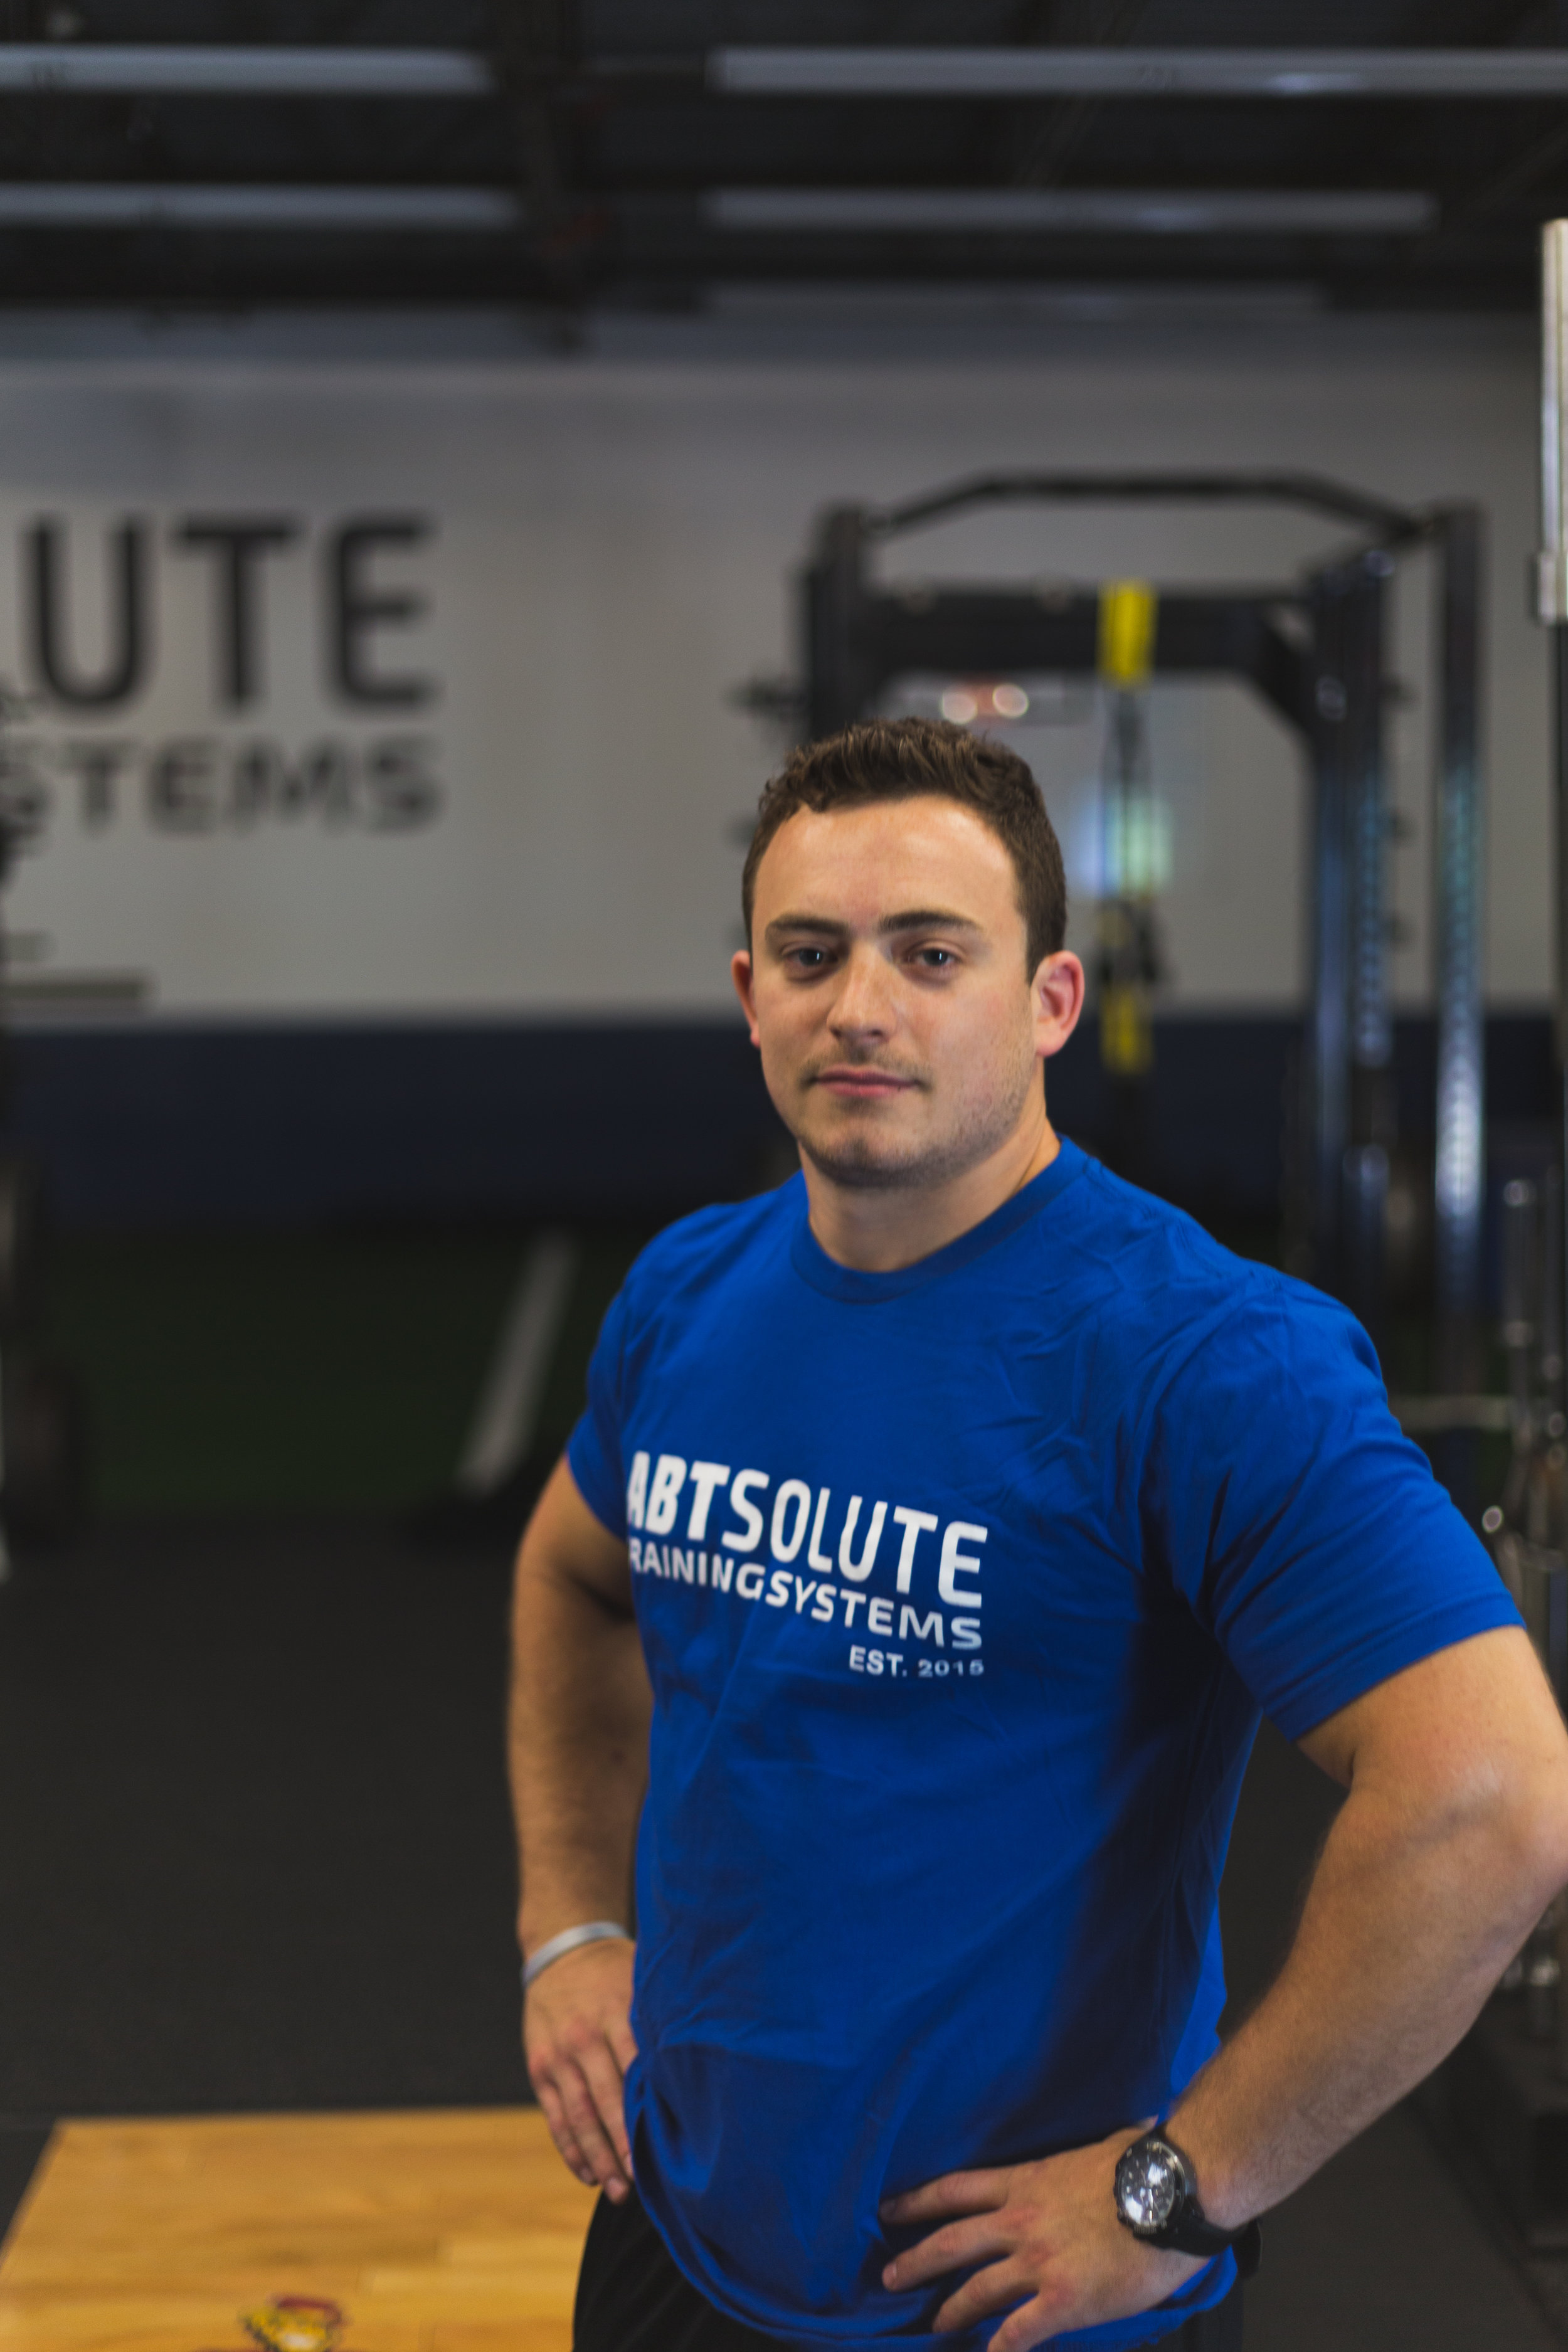 Andrew Abt - Owner/Head TrainerAndrew has been involved in elite sports – as a player and coach – for most of his life.He has coaching experience in both the private sector as well as the Division 1 College level. Prior to opening ABTsolute Training Systems, Andrew was the Assistant Strength & Conditioning Coach at Iona College where he worked with 21 teams and over 400 athletes. His specialties are strength training, speed, agility and injury prevention.Andrew has turned his lifelong passion for sports and fitness into a career — helping people achieve their potential and become the healthiest version of themselves.Certifications:Certified Strength and Conditioning SpecialistUSA Weight Lifting Sports Performance CoachFunctional Movement Screen Certified